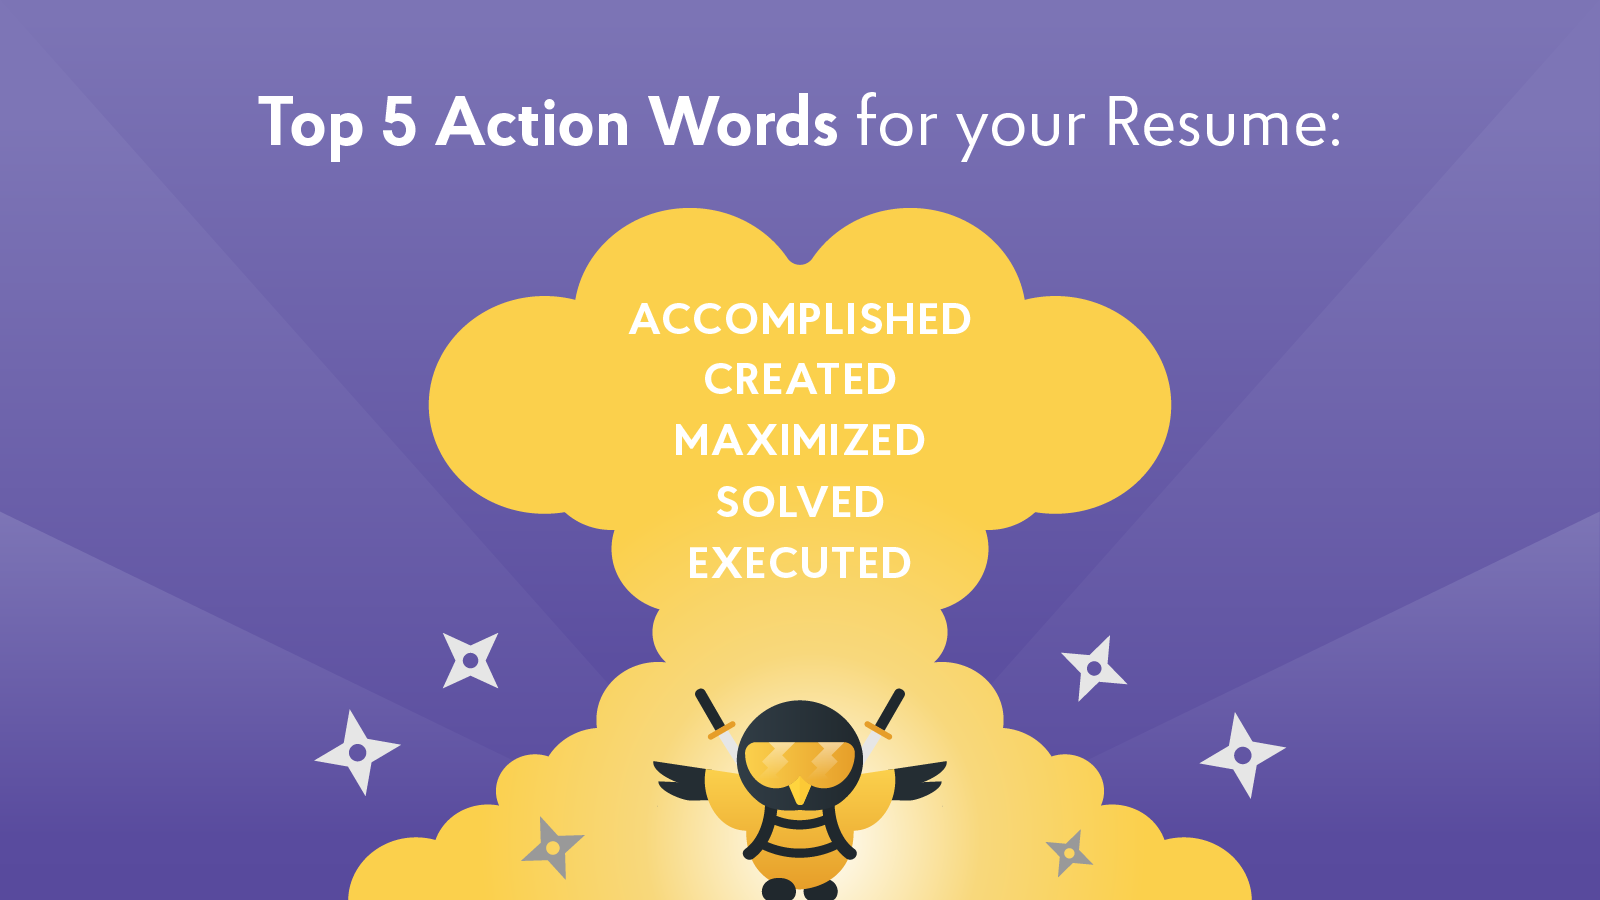 40 Best Action Words To Include In Your Resume And Cover Letter